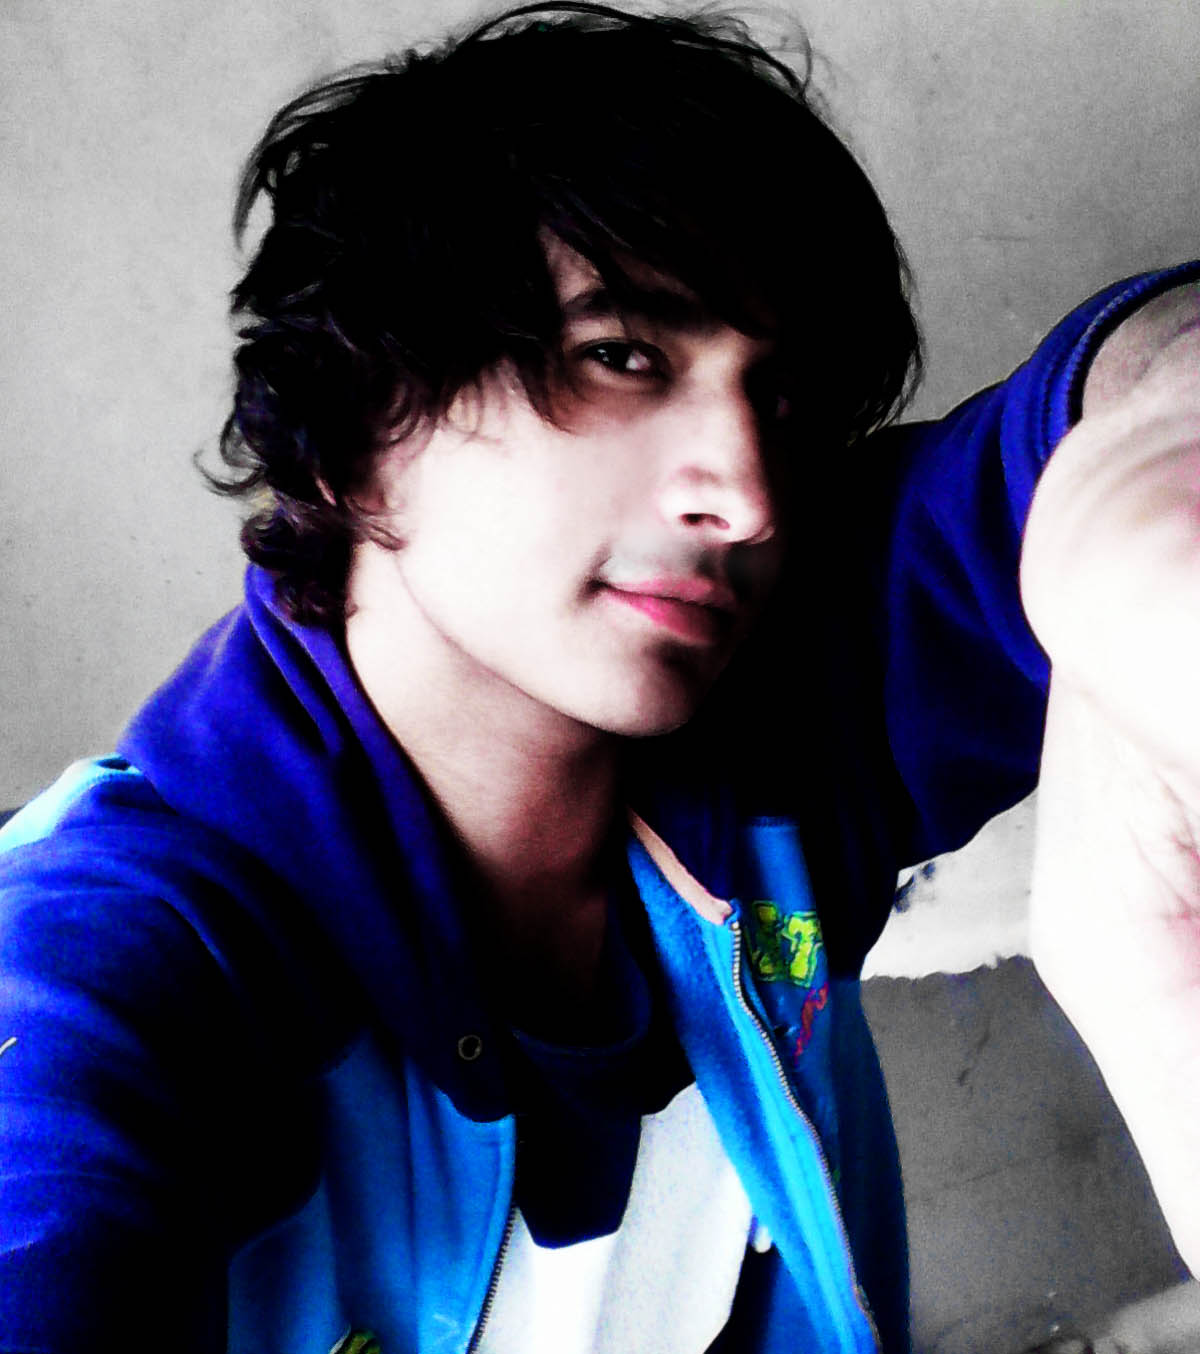 Emo Boys Images Emo Boy Sexy Shoot Hd Wallpaper And